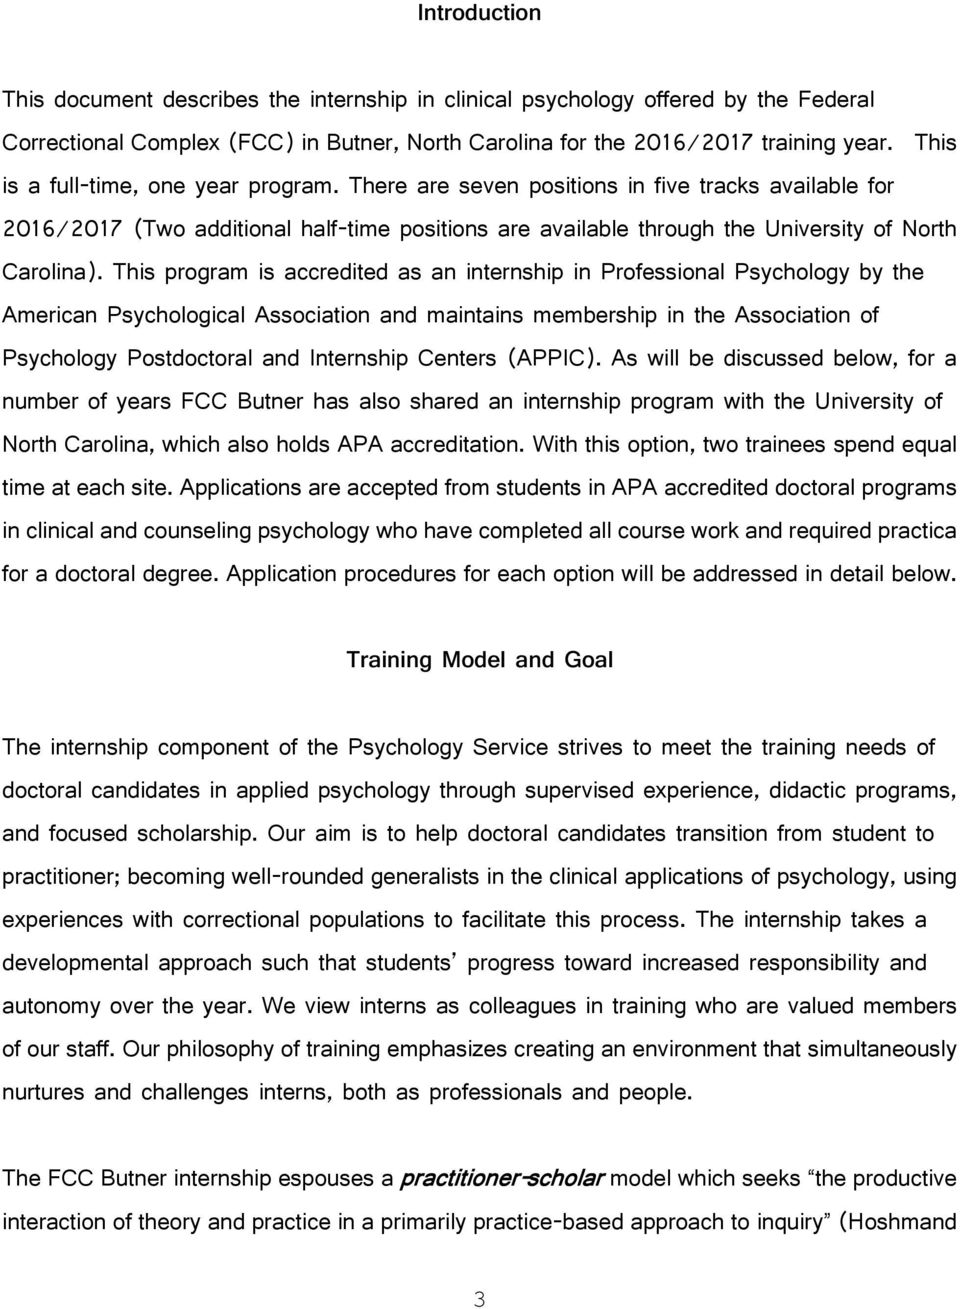 This program is accredited as an internship in Professional Psychology by the American Psychological Association and maintains membership in the Association of Psychology Postdoctoral and Internship